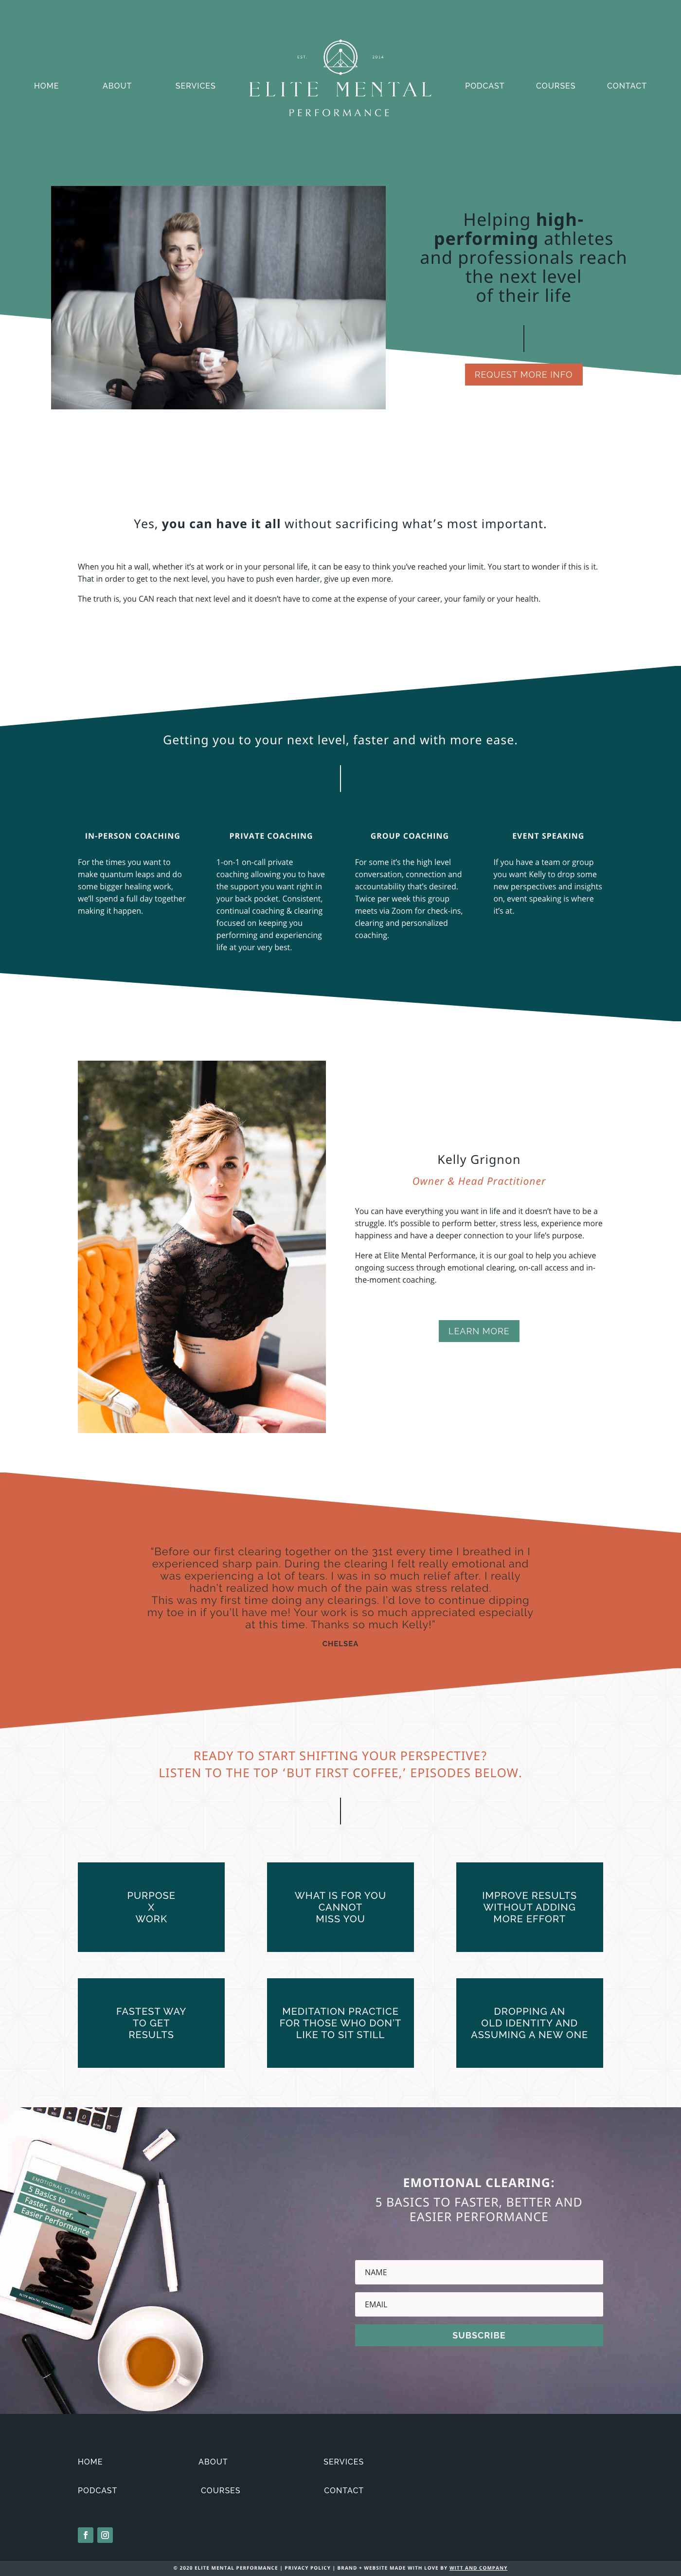 Elite Mental Performance Website Home Page with Divi Theme | Witt and Company